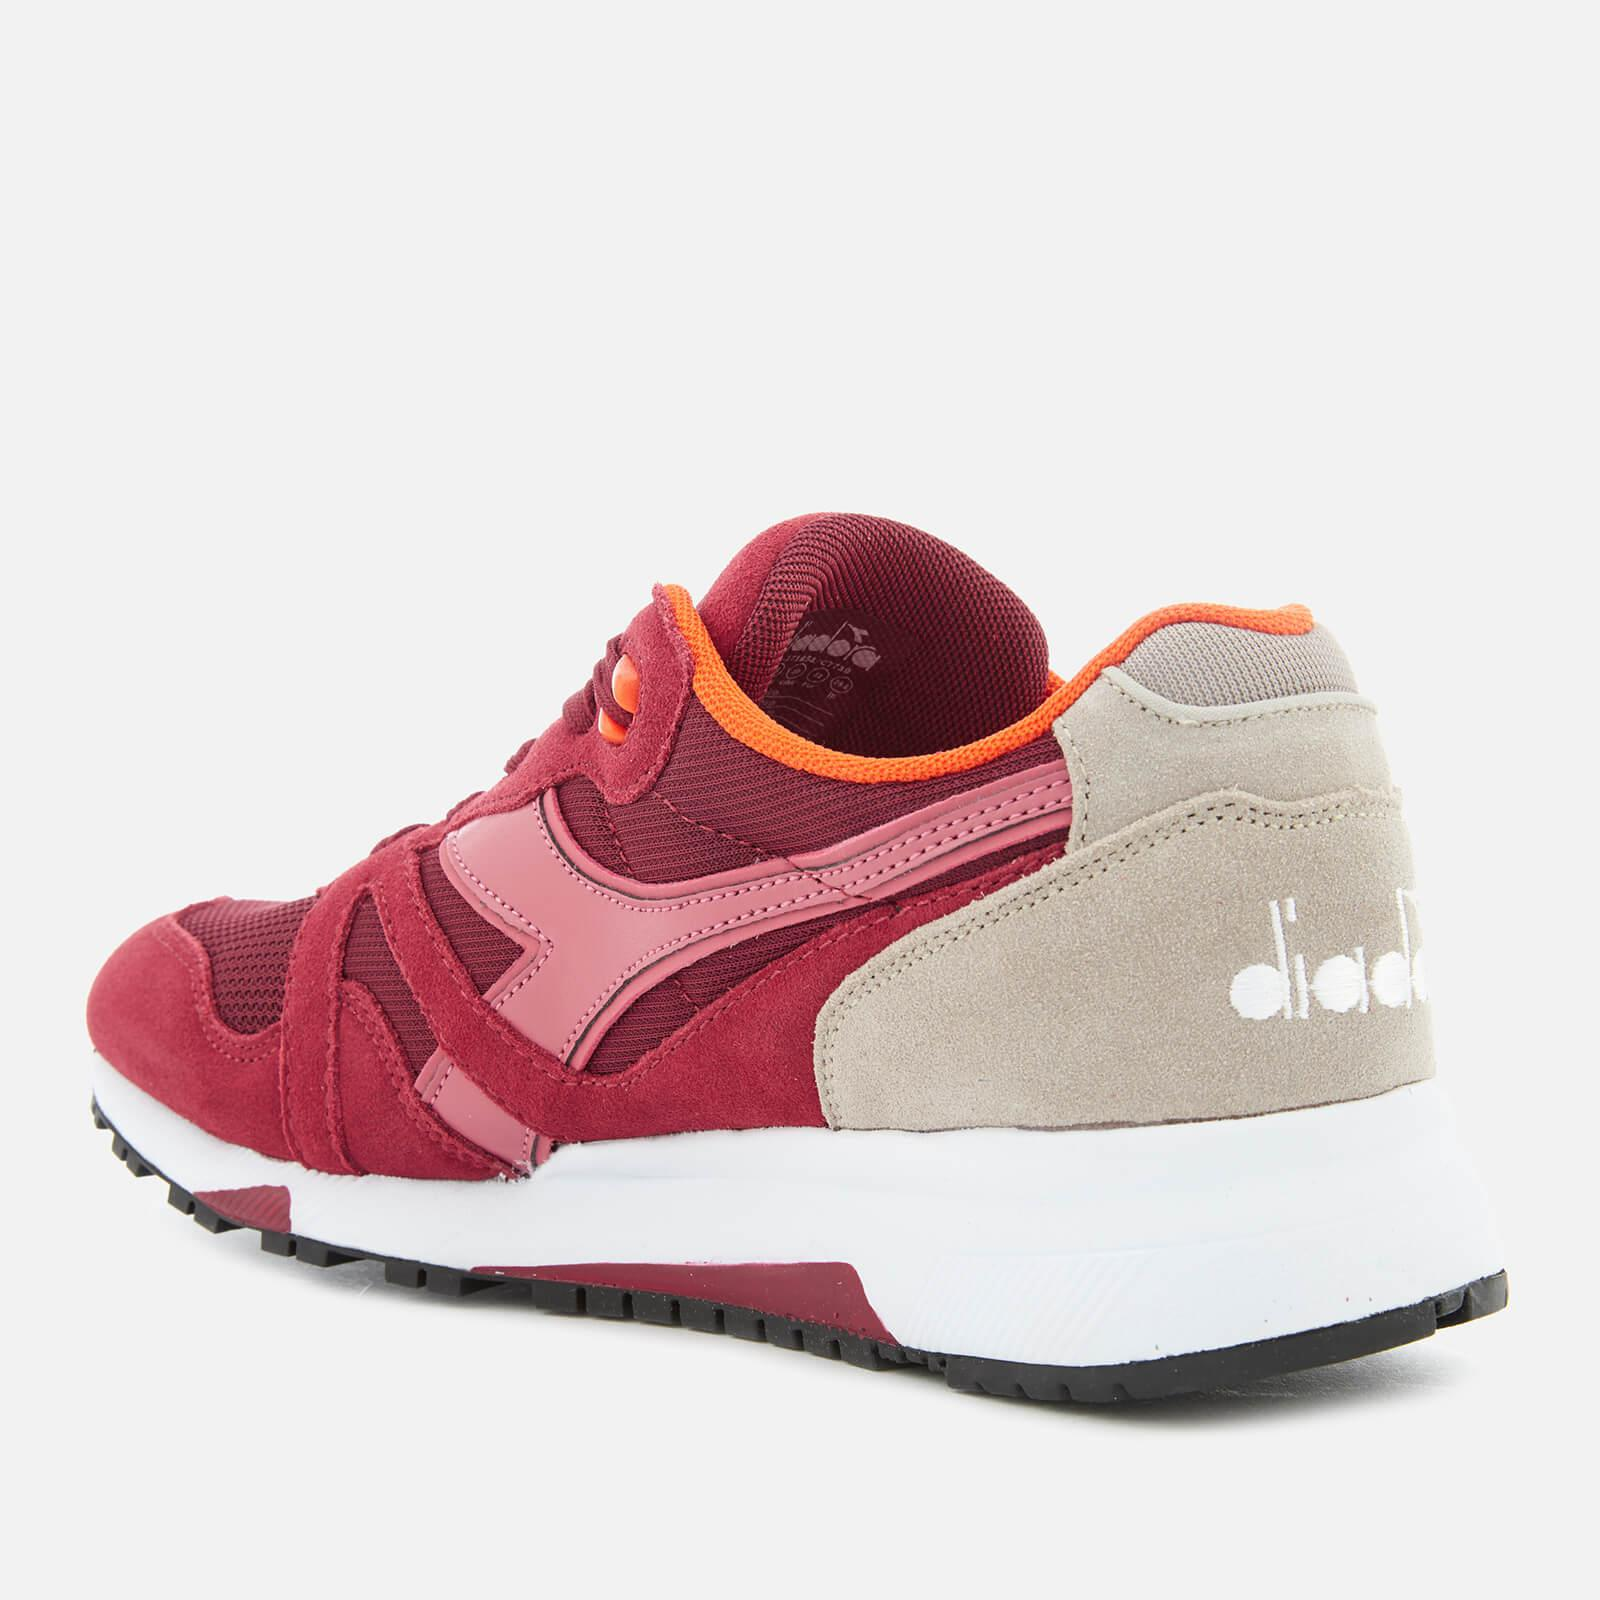 Lyst - Diadora N9000 111 Trainers in Red for Men a3684098bc